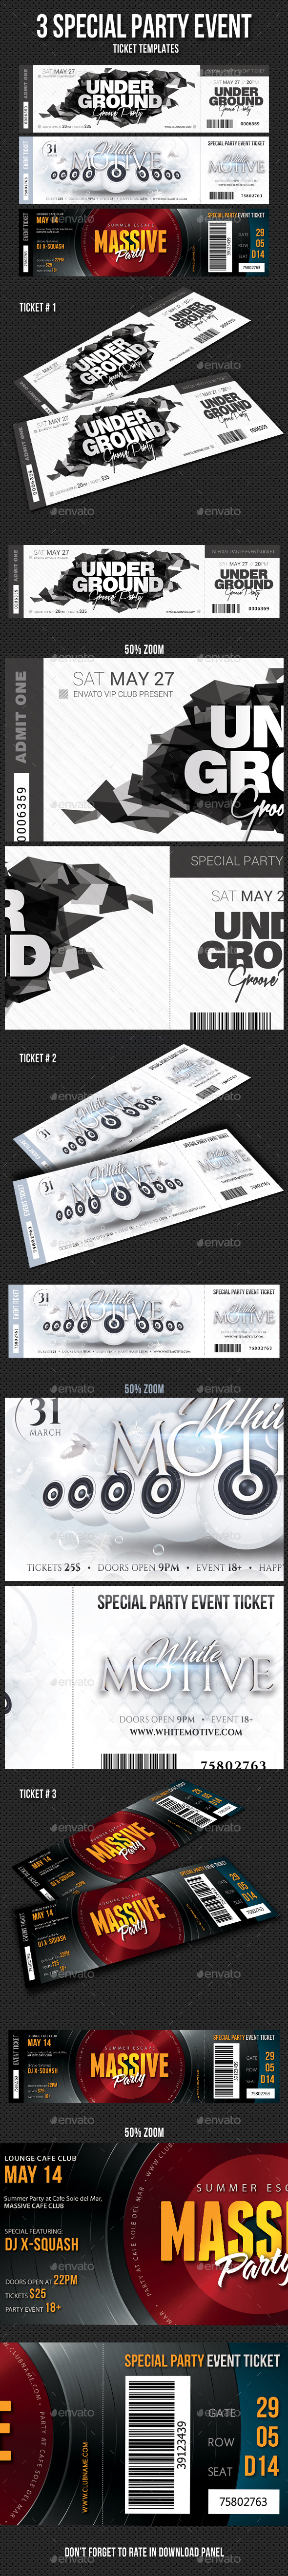 3 in 1 Special Party Event Ticket Bundle V05 - Cards & Invites Print Templates